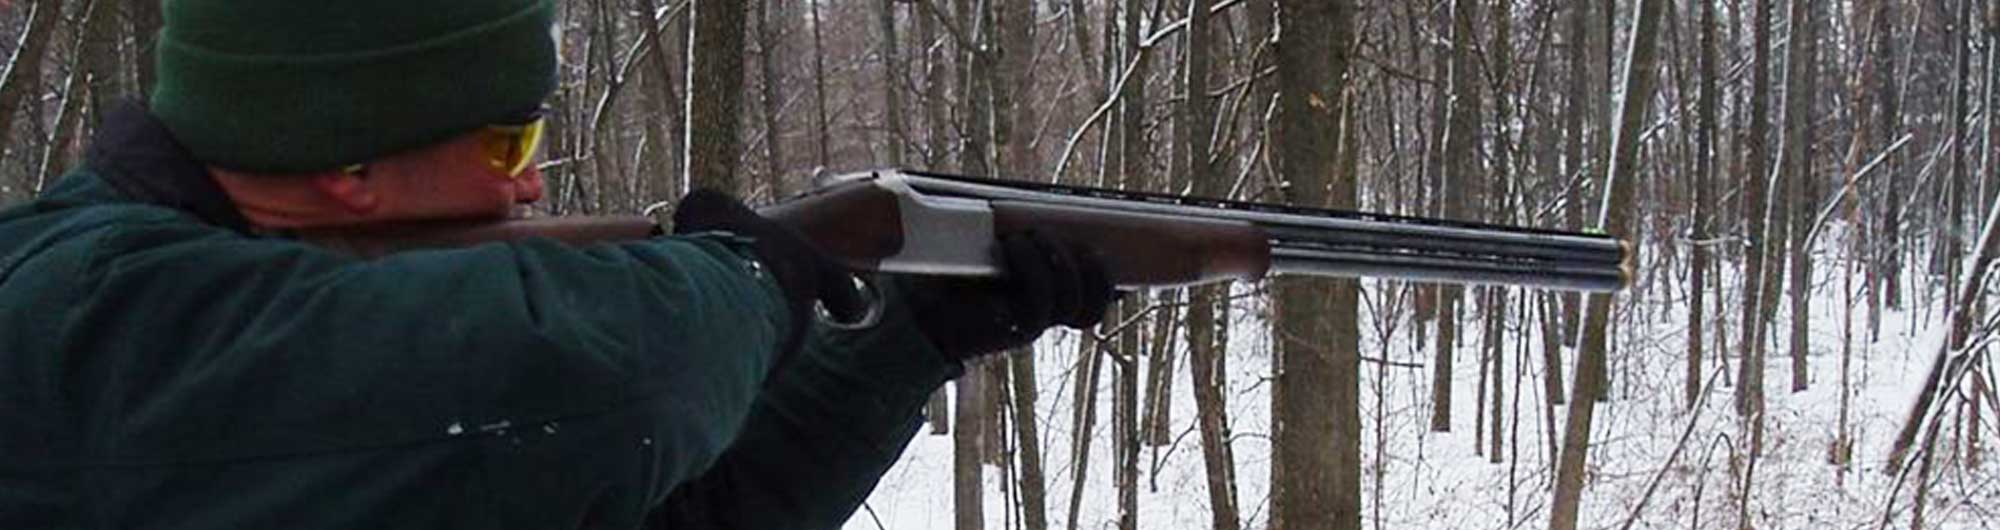 Hunter aiming his gun in a snowy woodland scene.